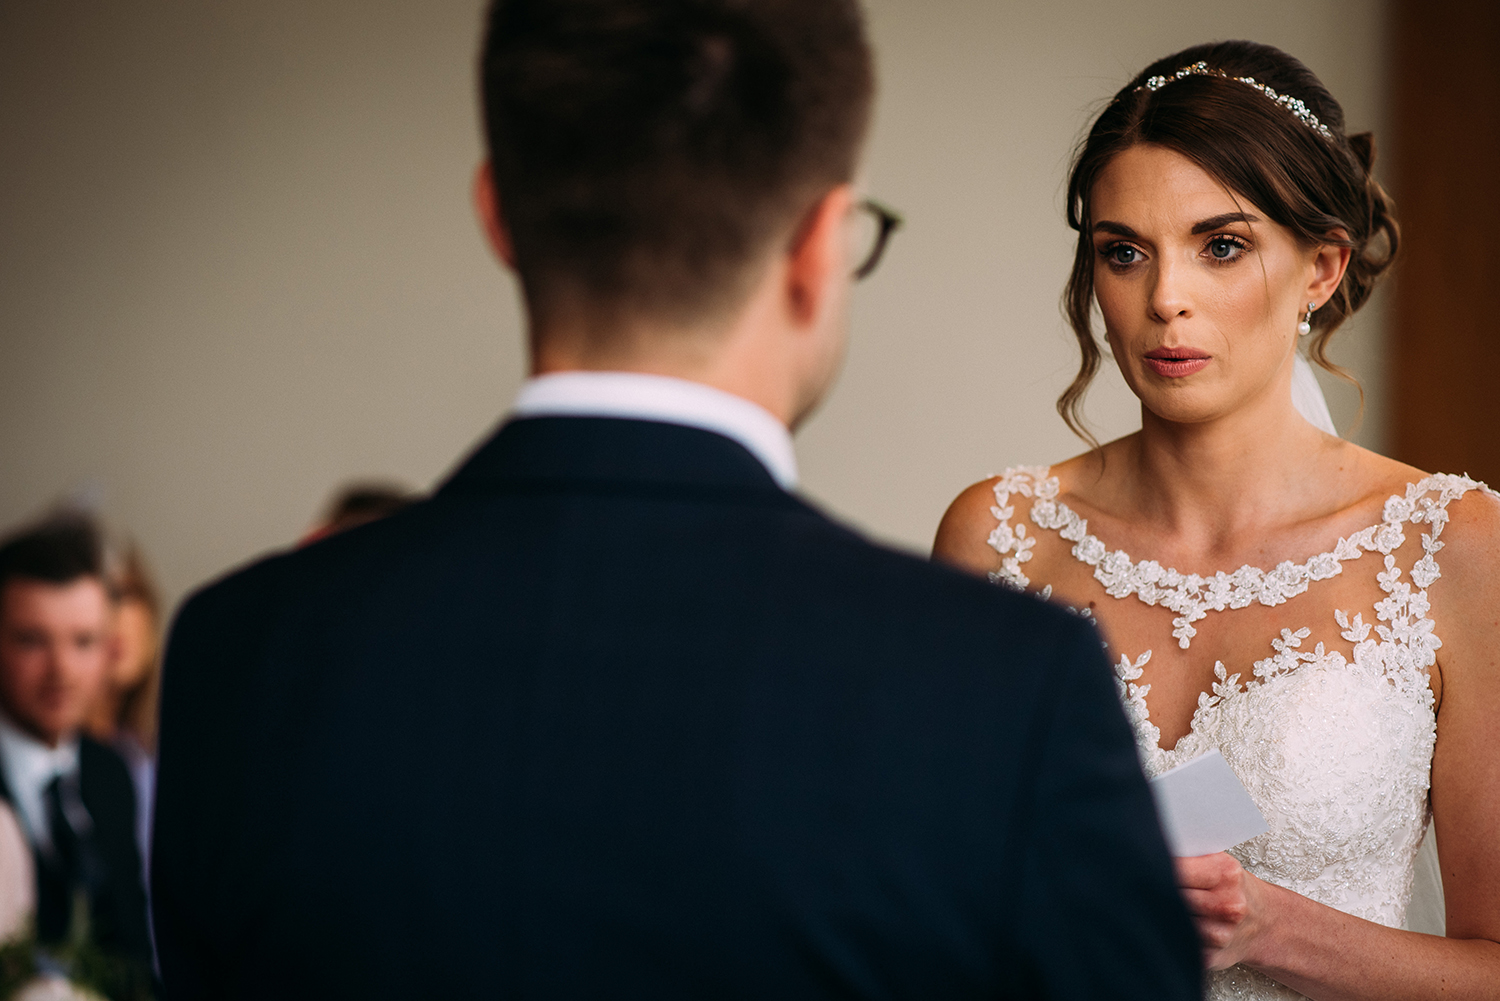 nervous bride takes a breath during the vows